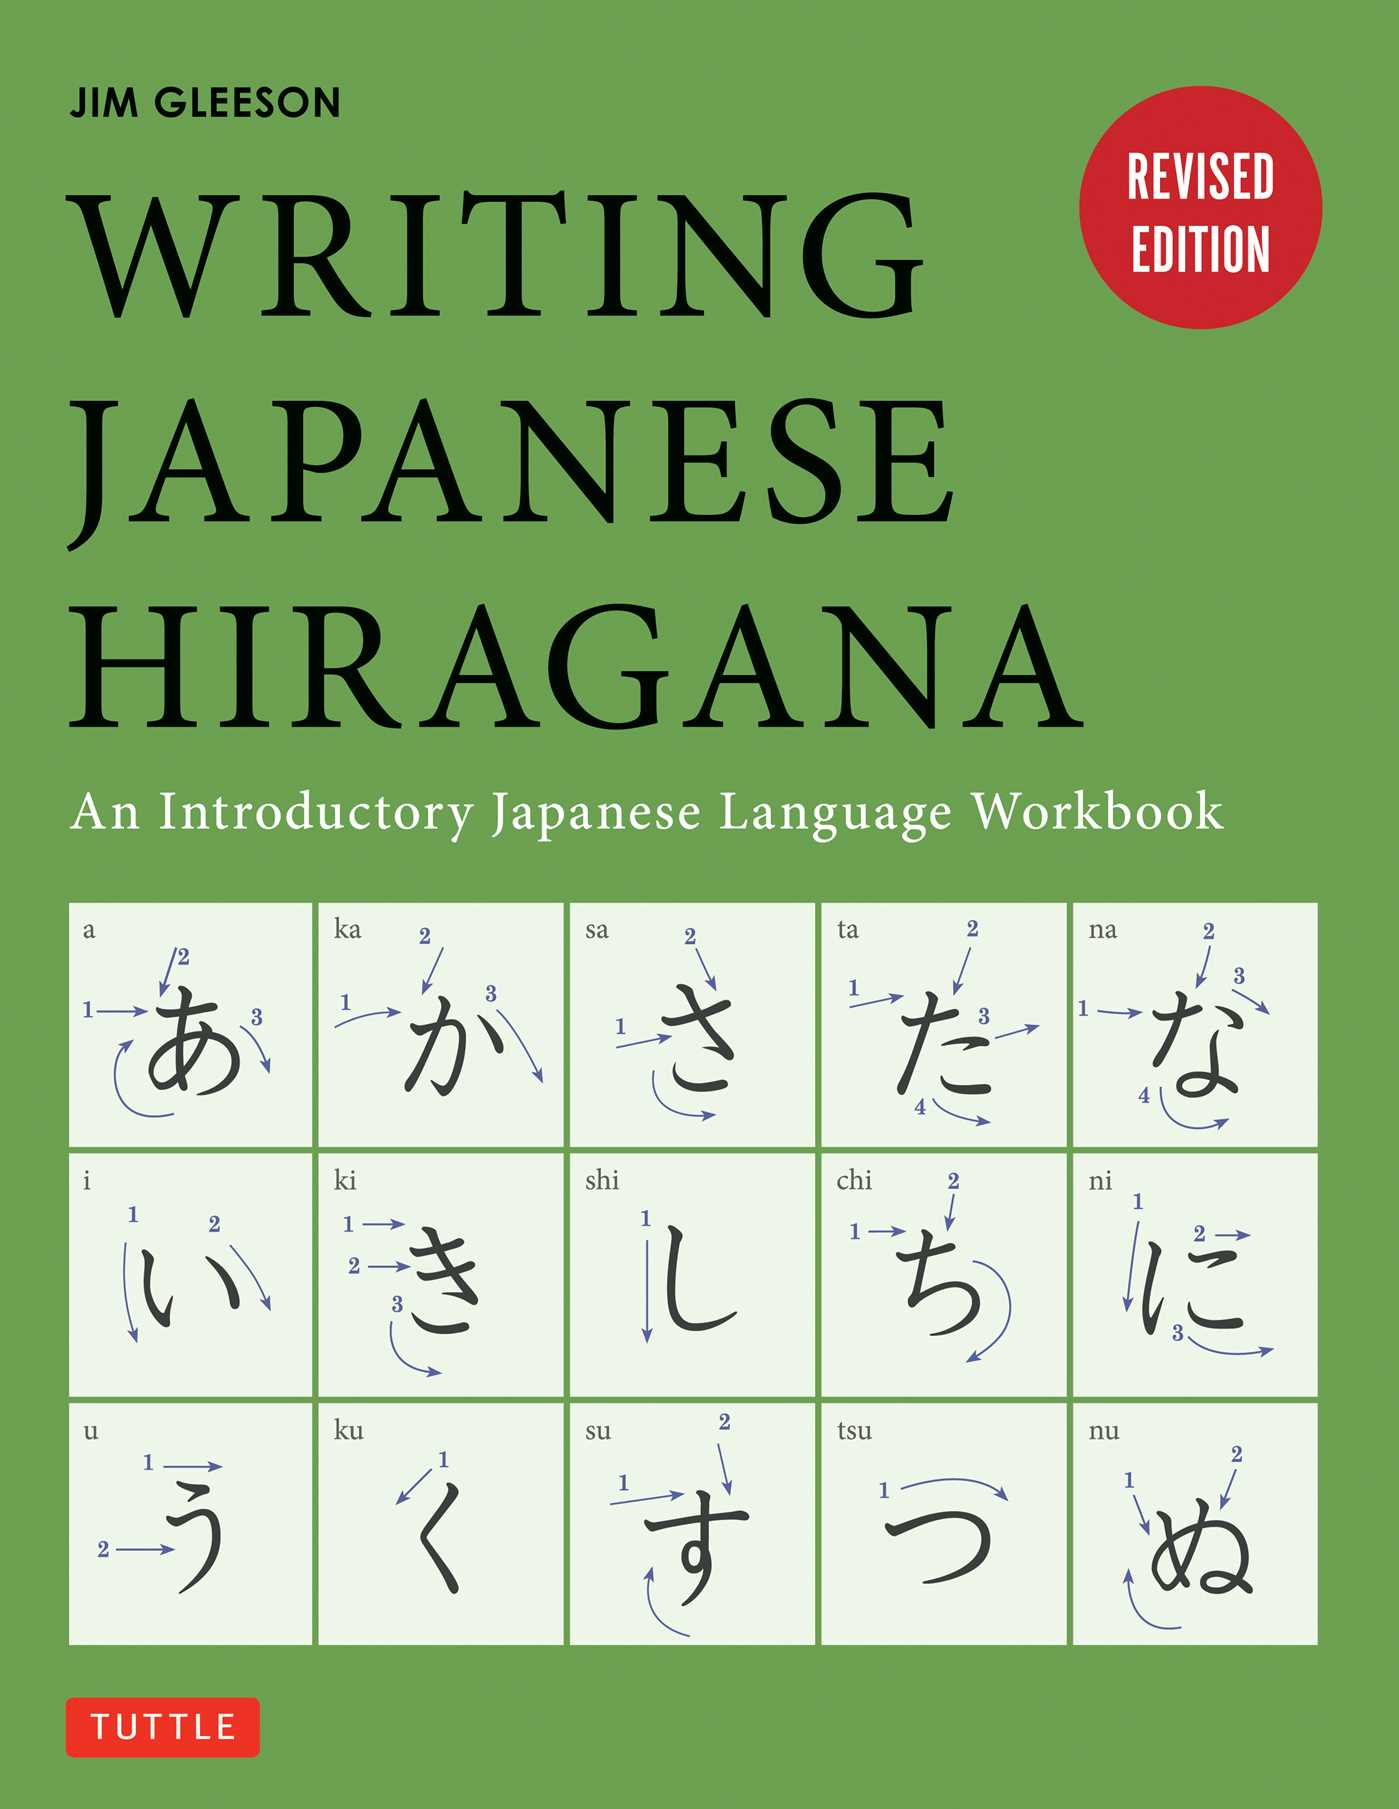 Writing Japanese Hiragana An Introductory Japanese